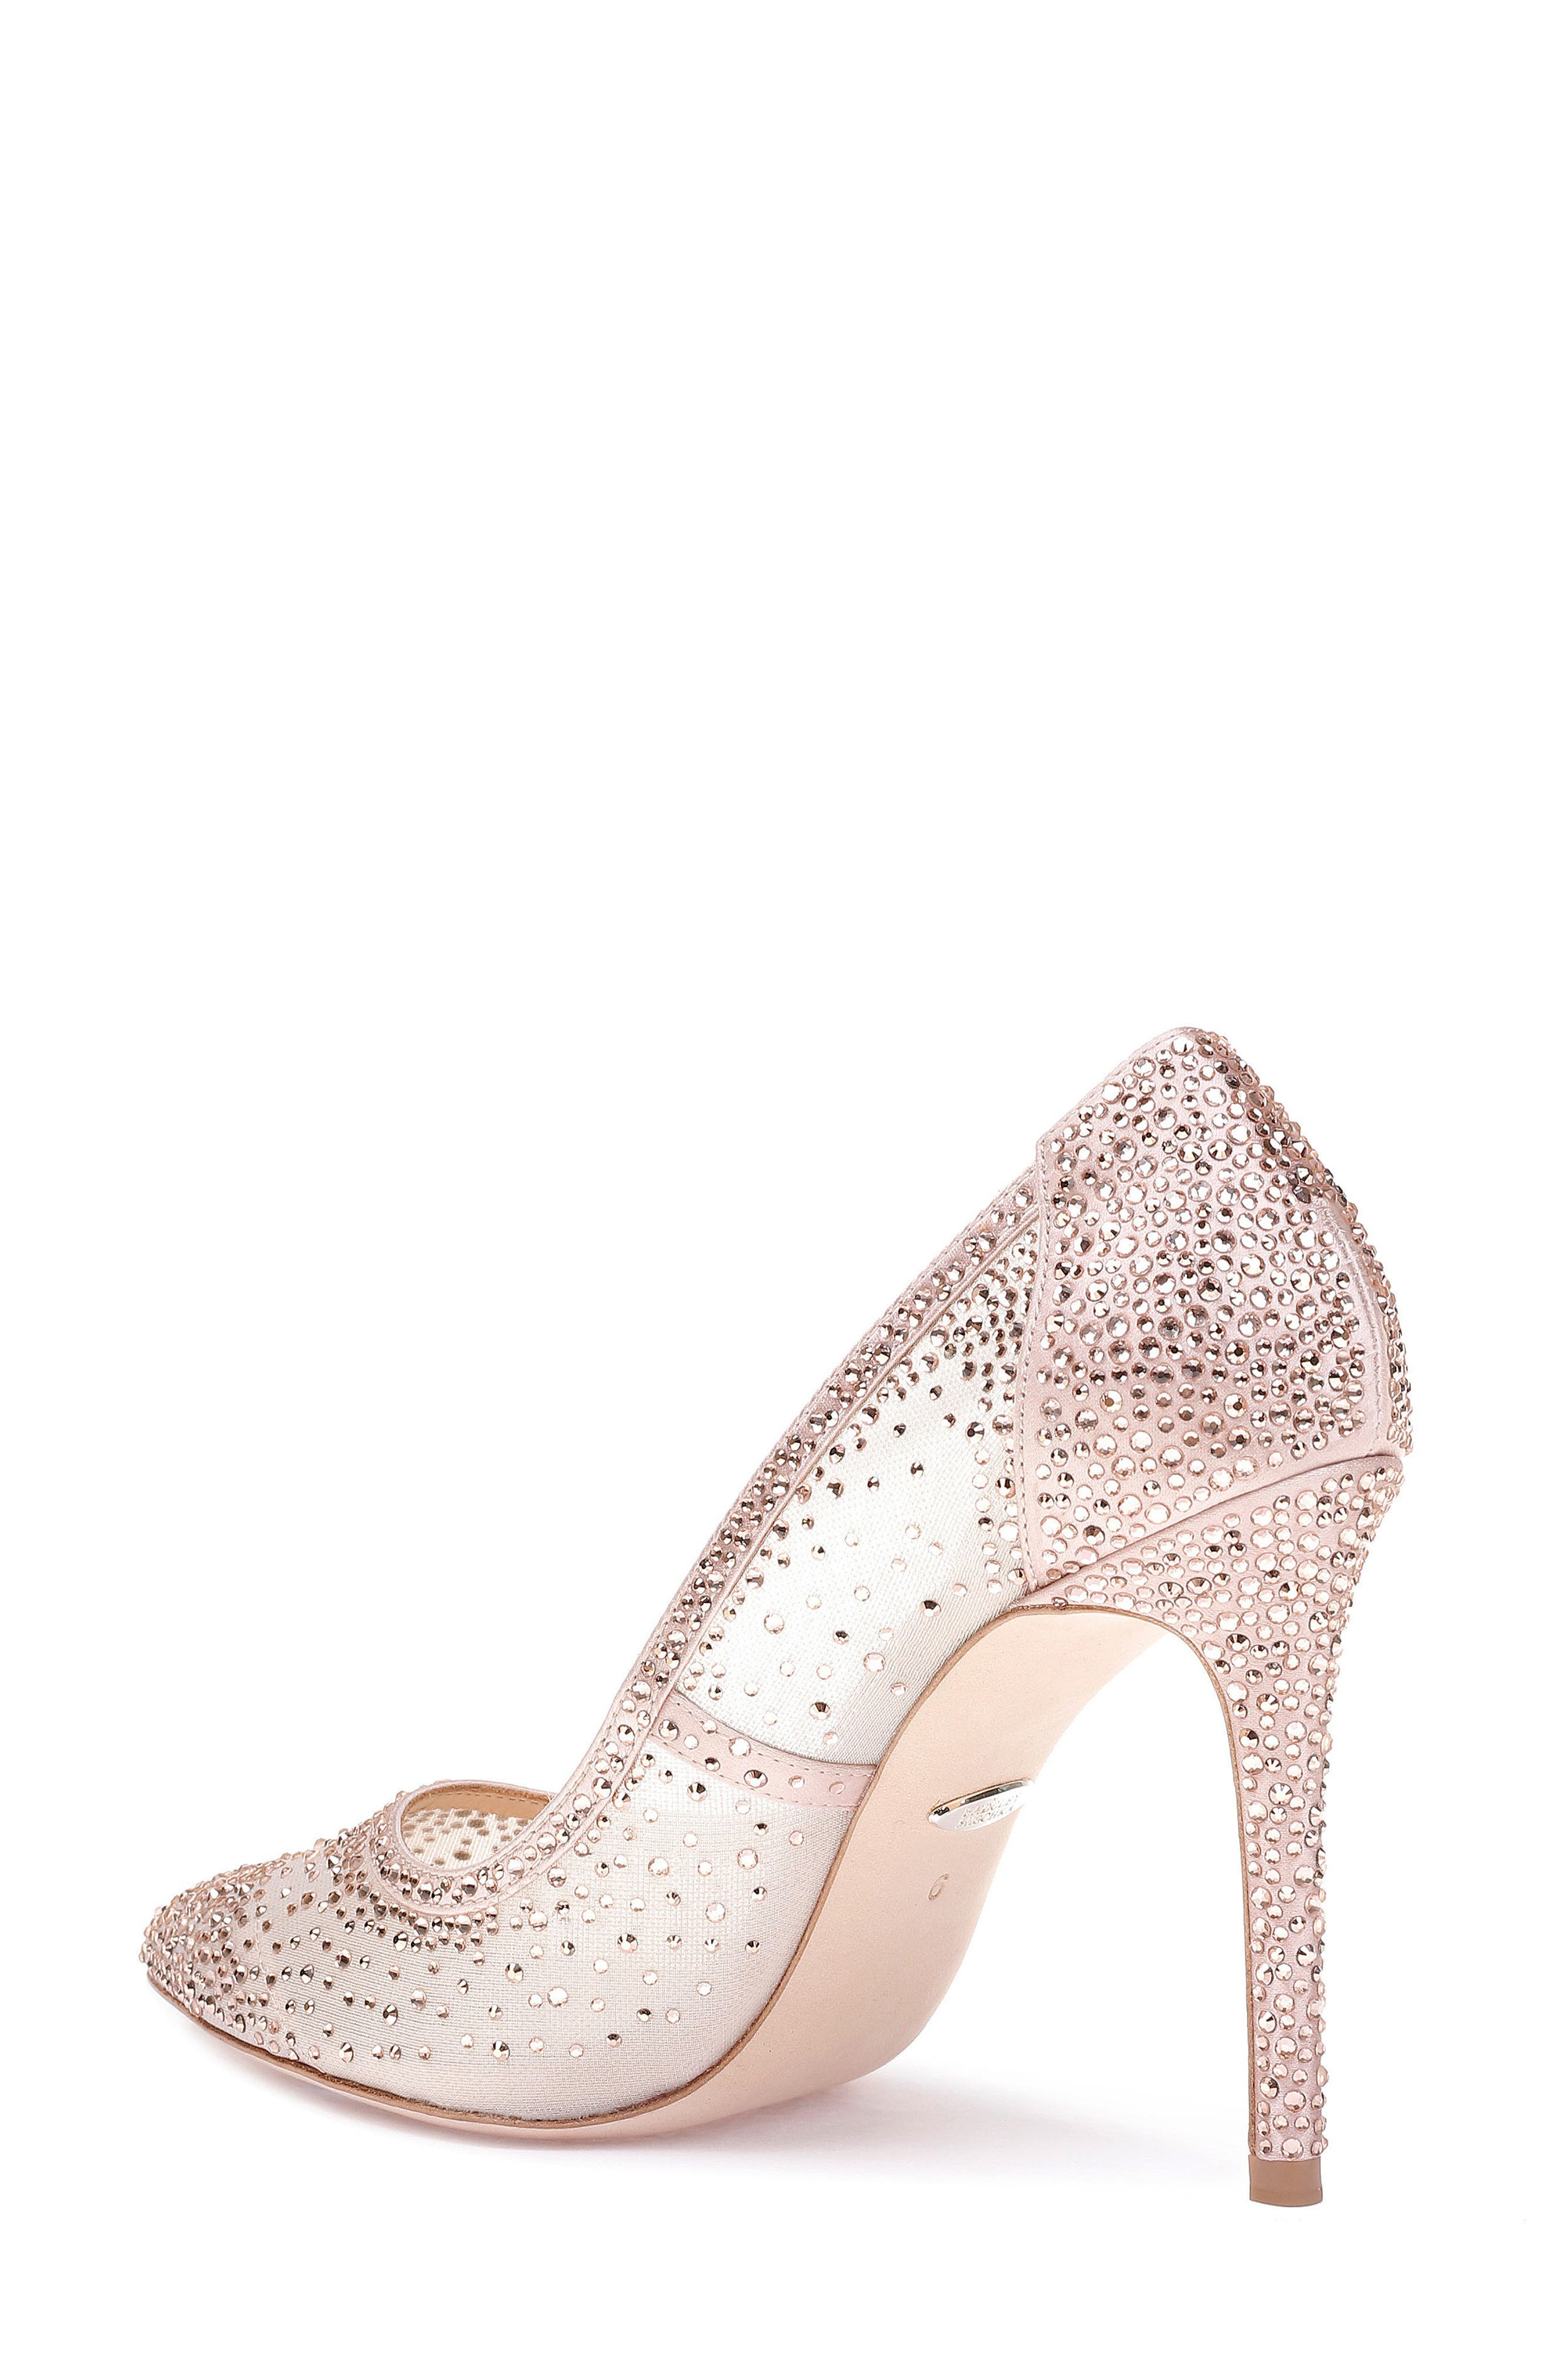 Weslee Pointy Toe Pump,                             Alternate thumbnail 2, color,                             BLUSH SATIN